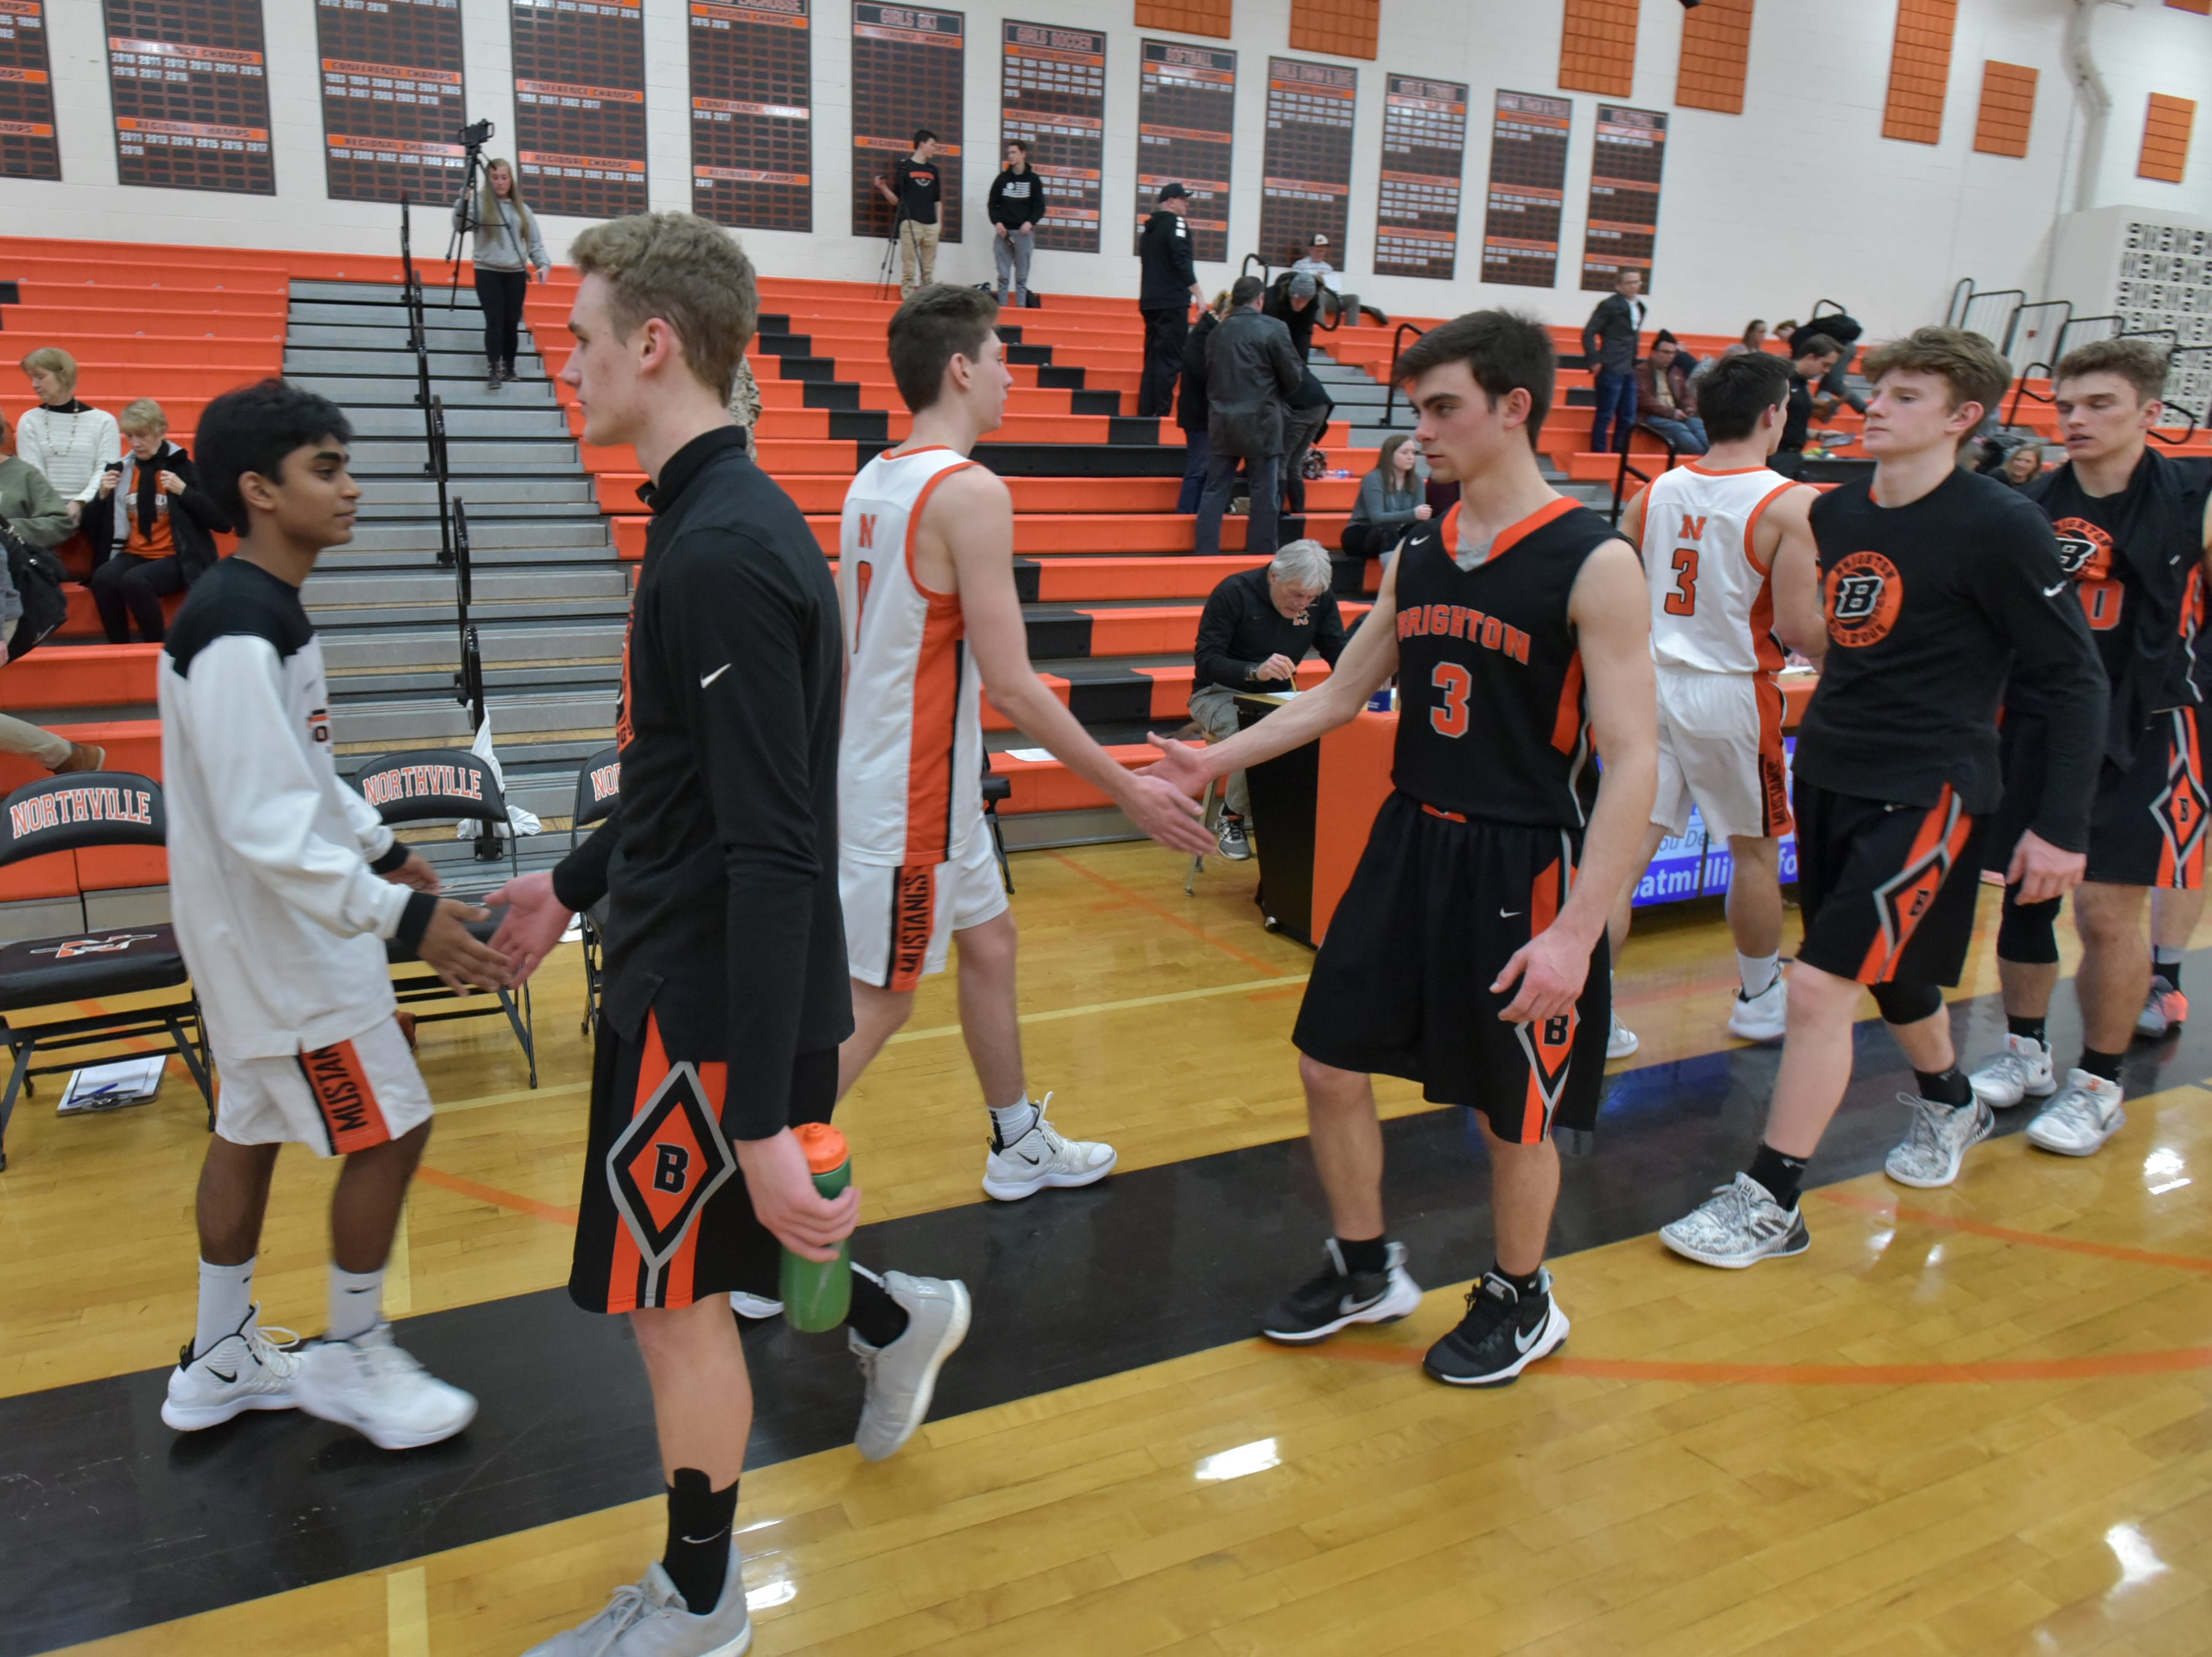 The two teams greet each other after their Jan. 20 game at Northville High.